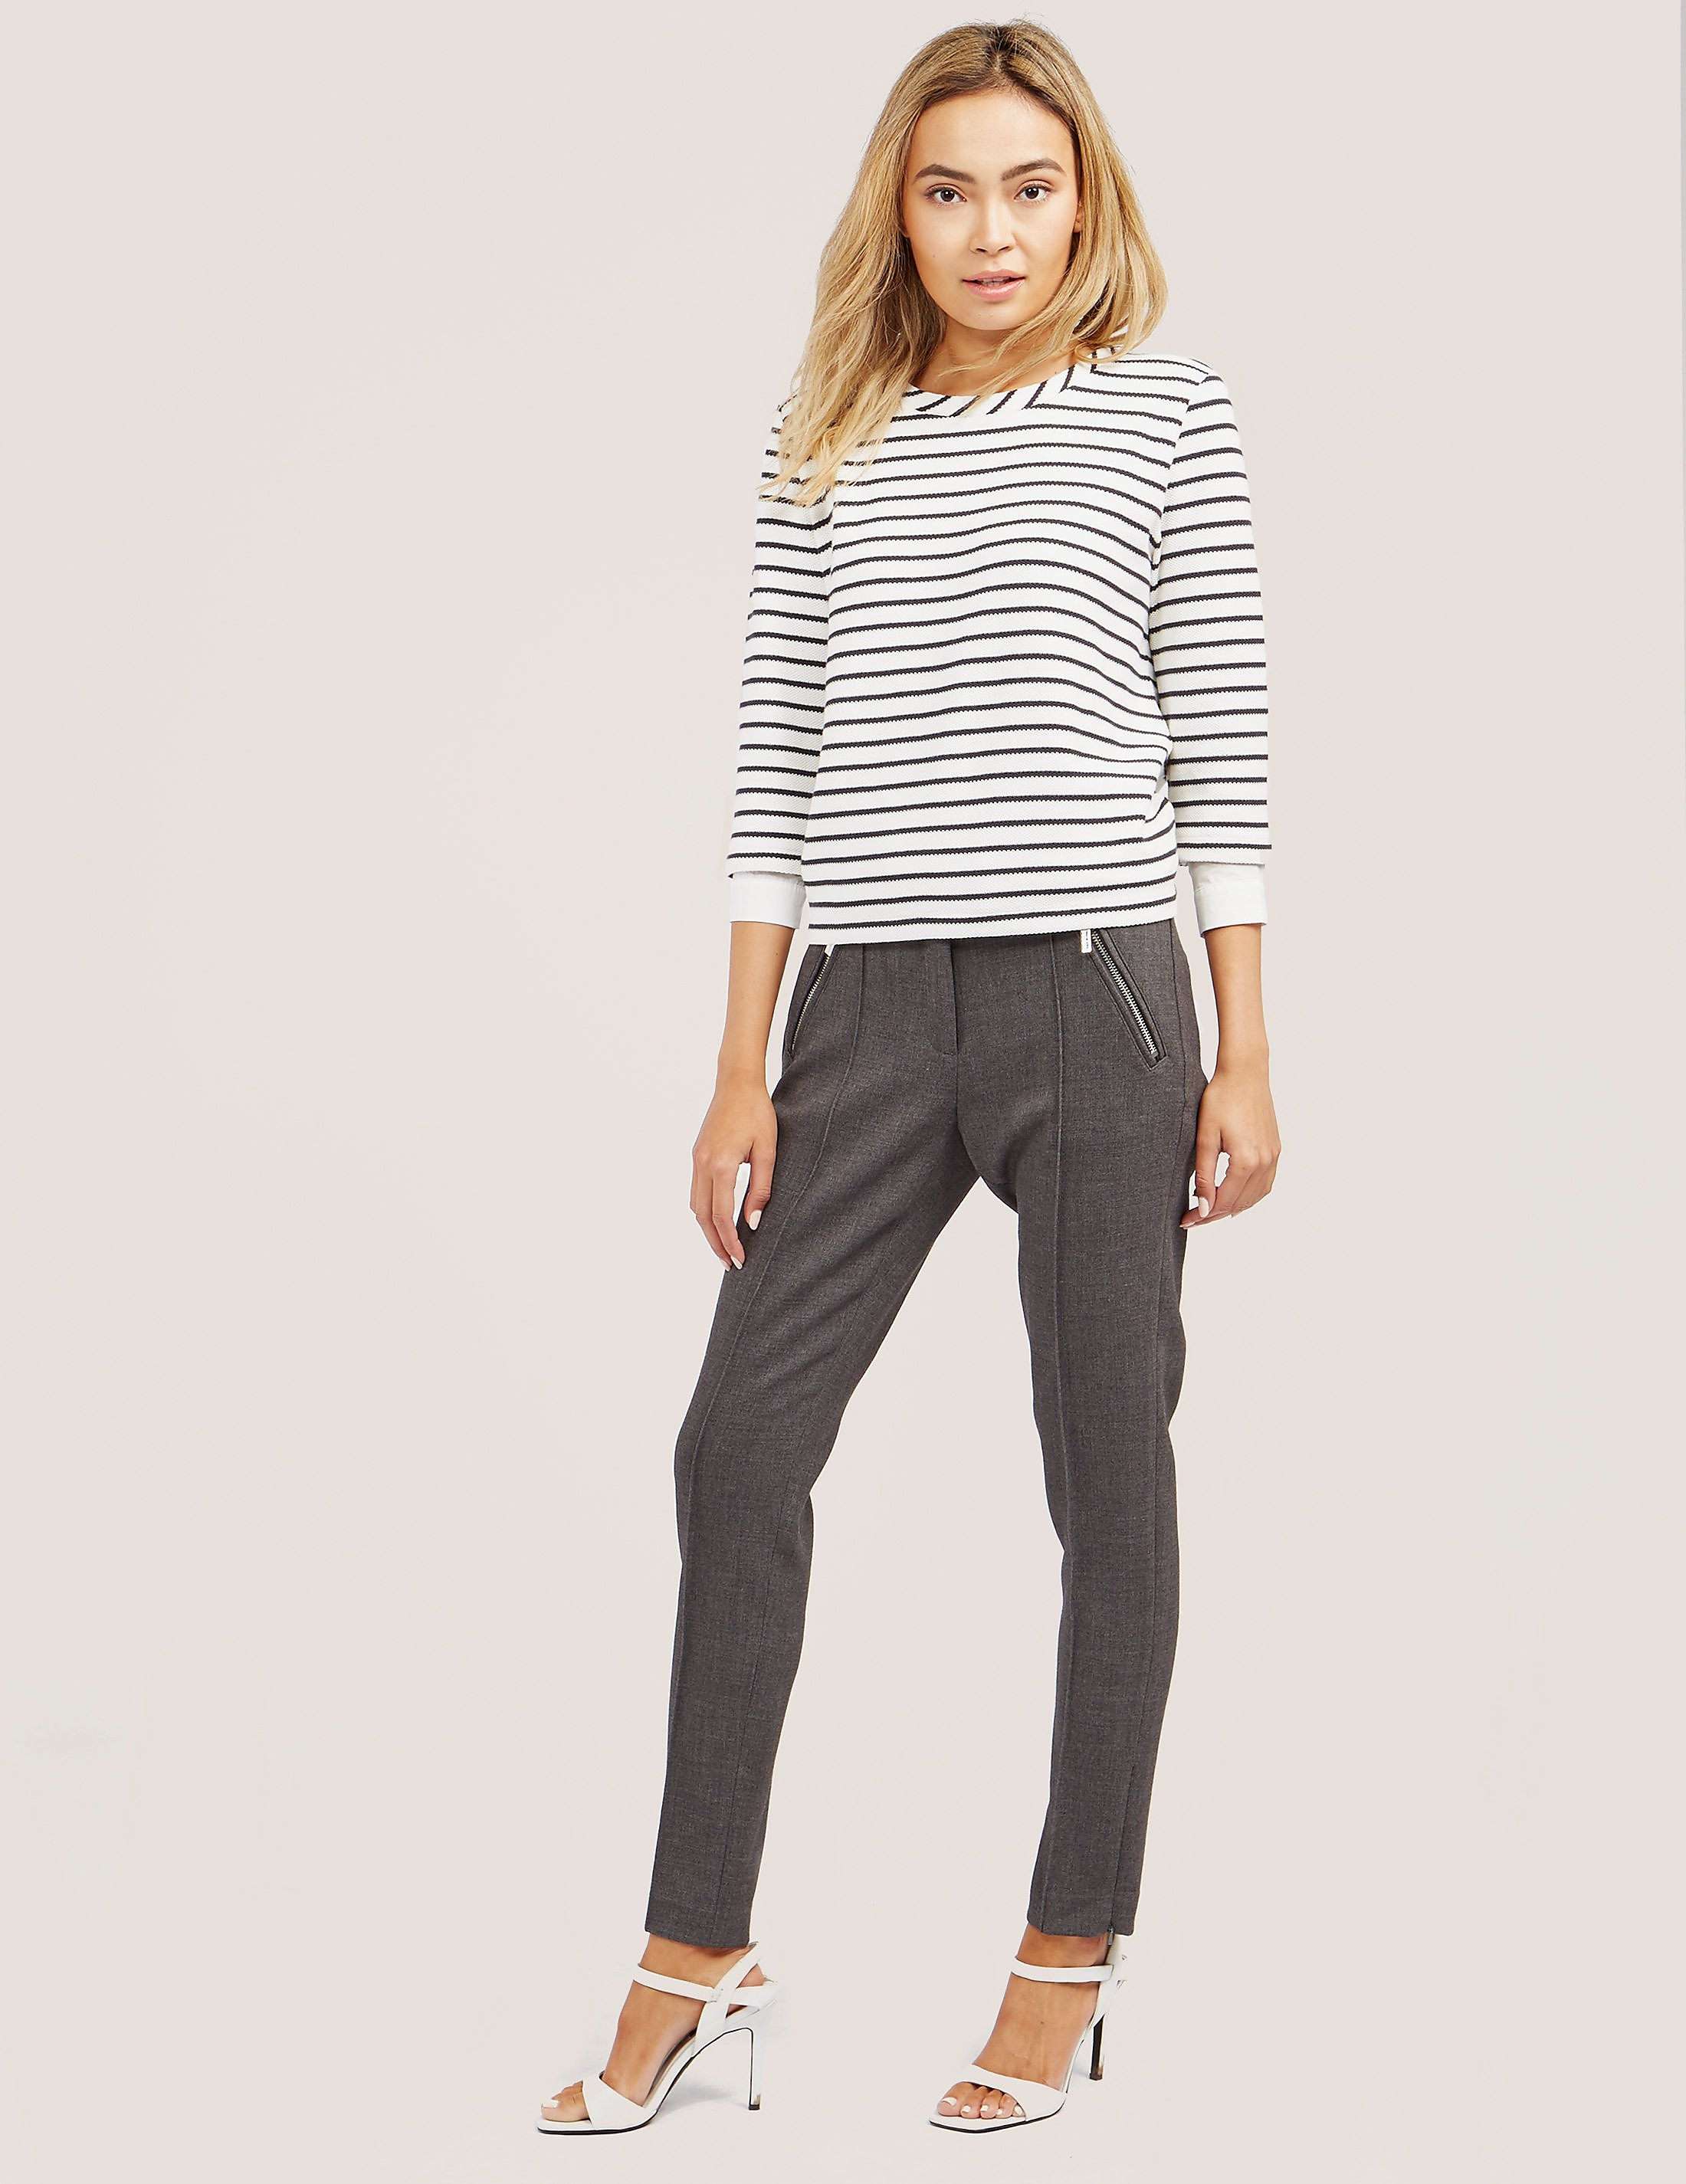 Michael Kors Derby Trousers